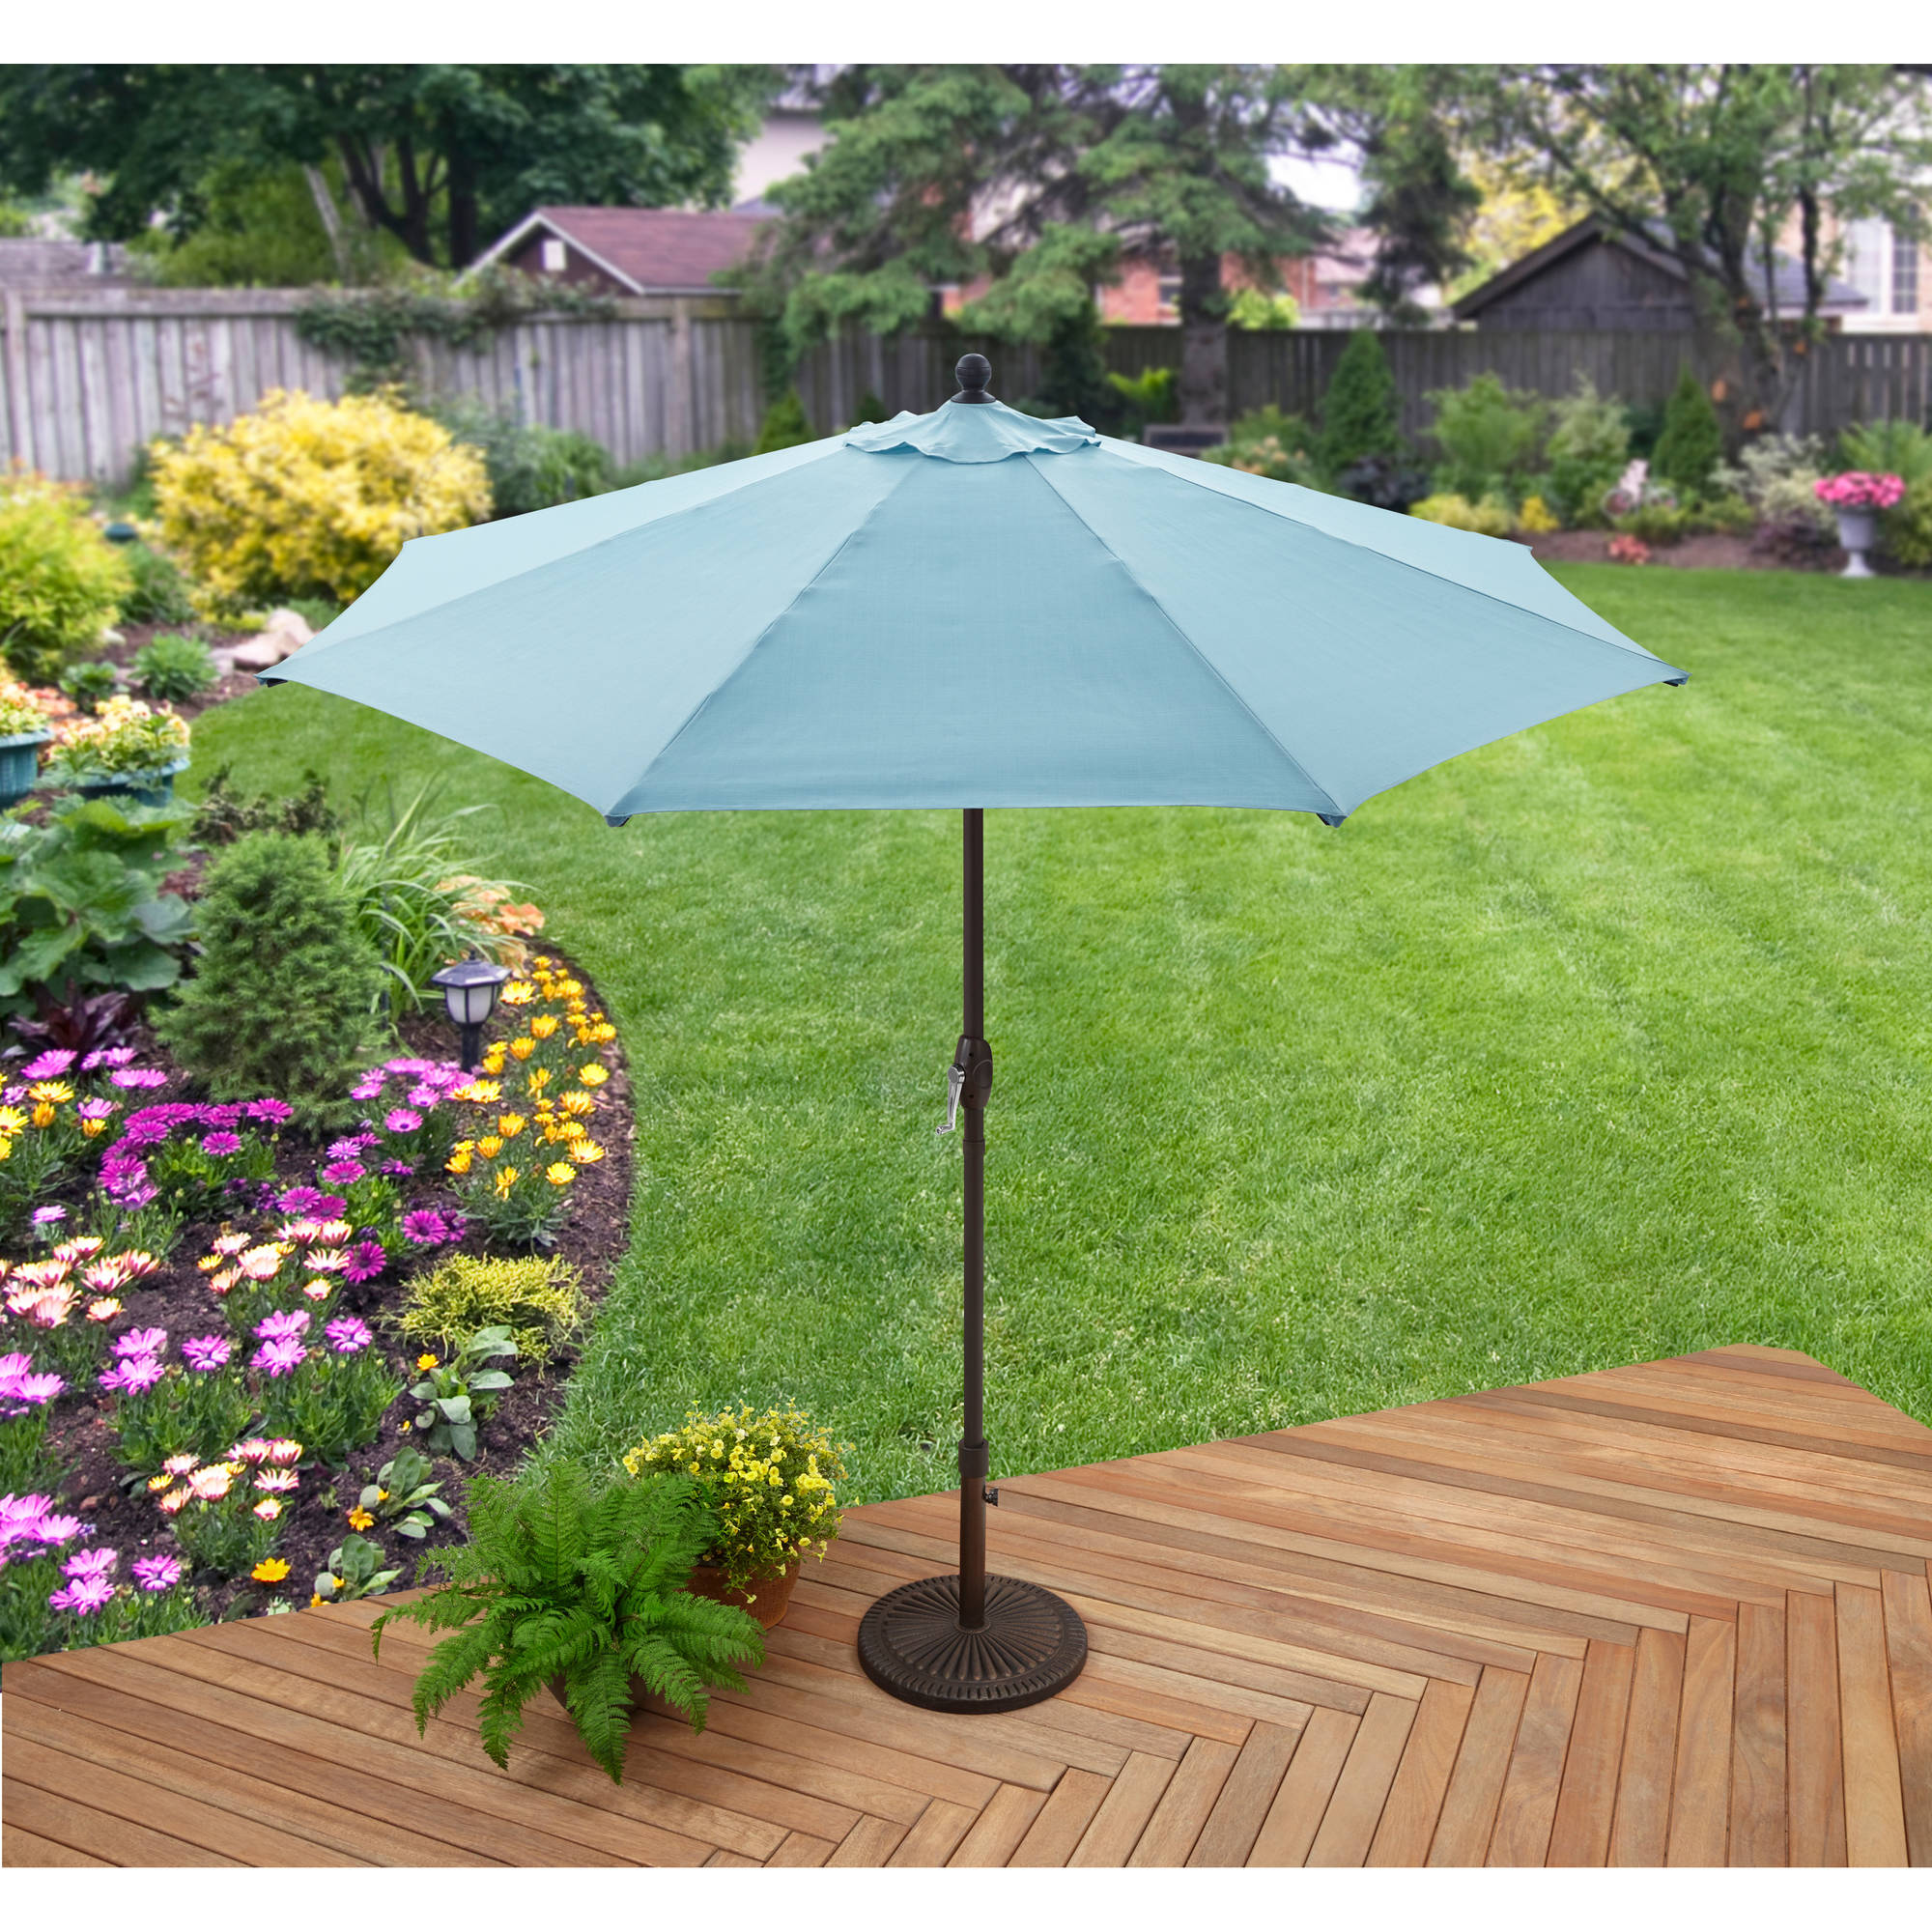 Better Homes and Gardens 9' Market Umbrella, aqua